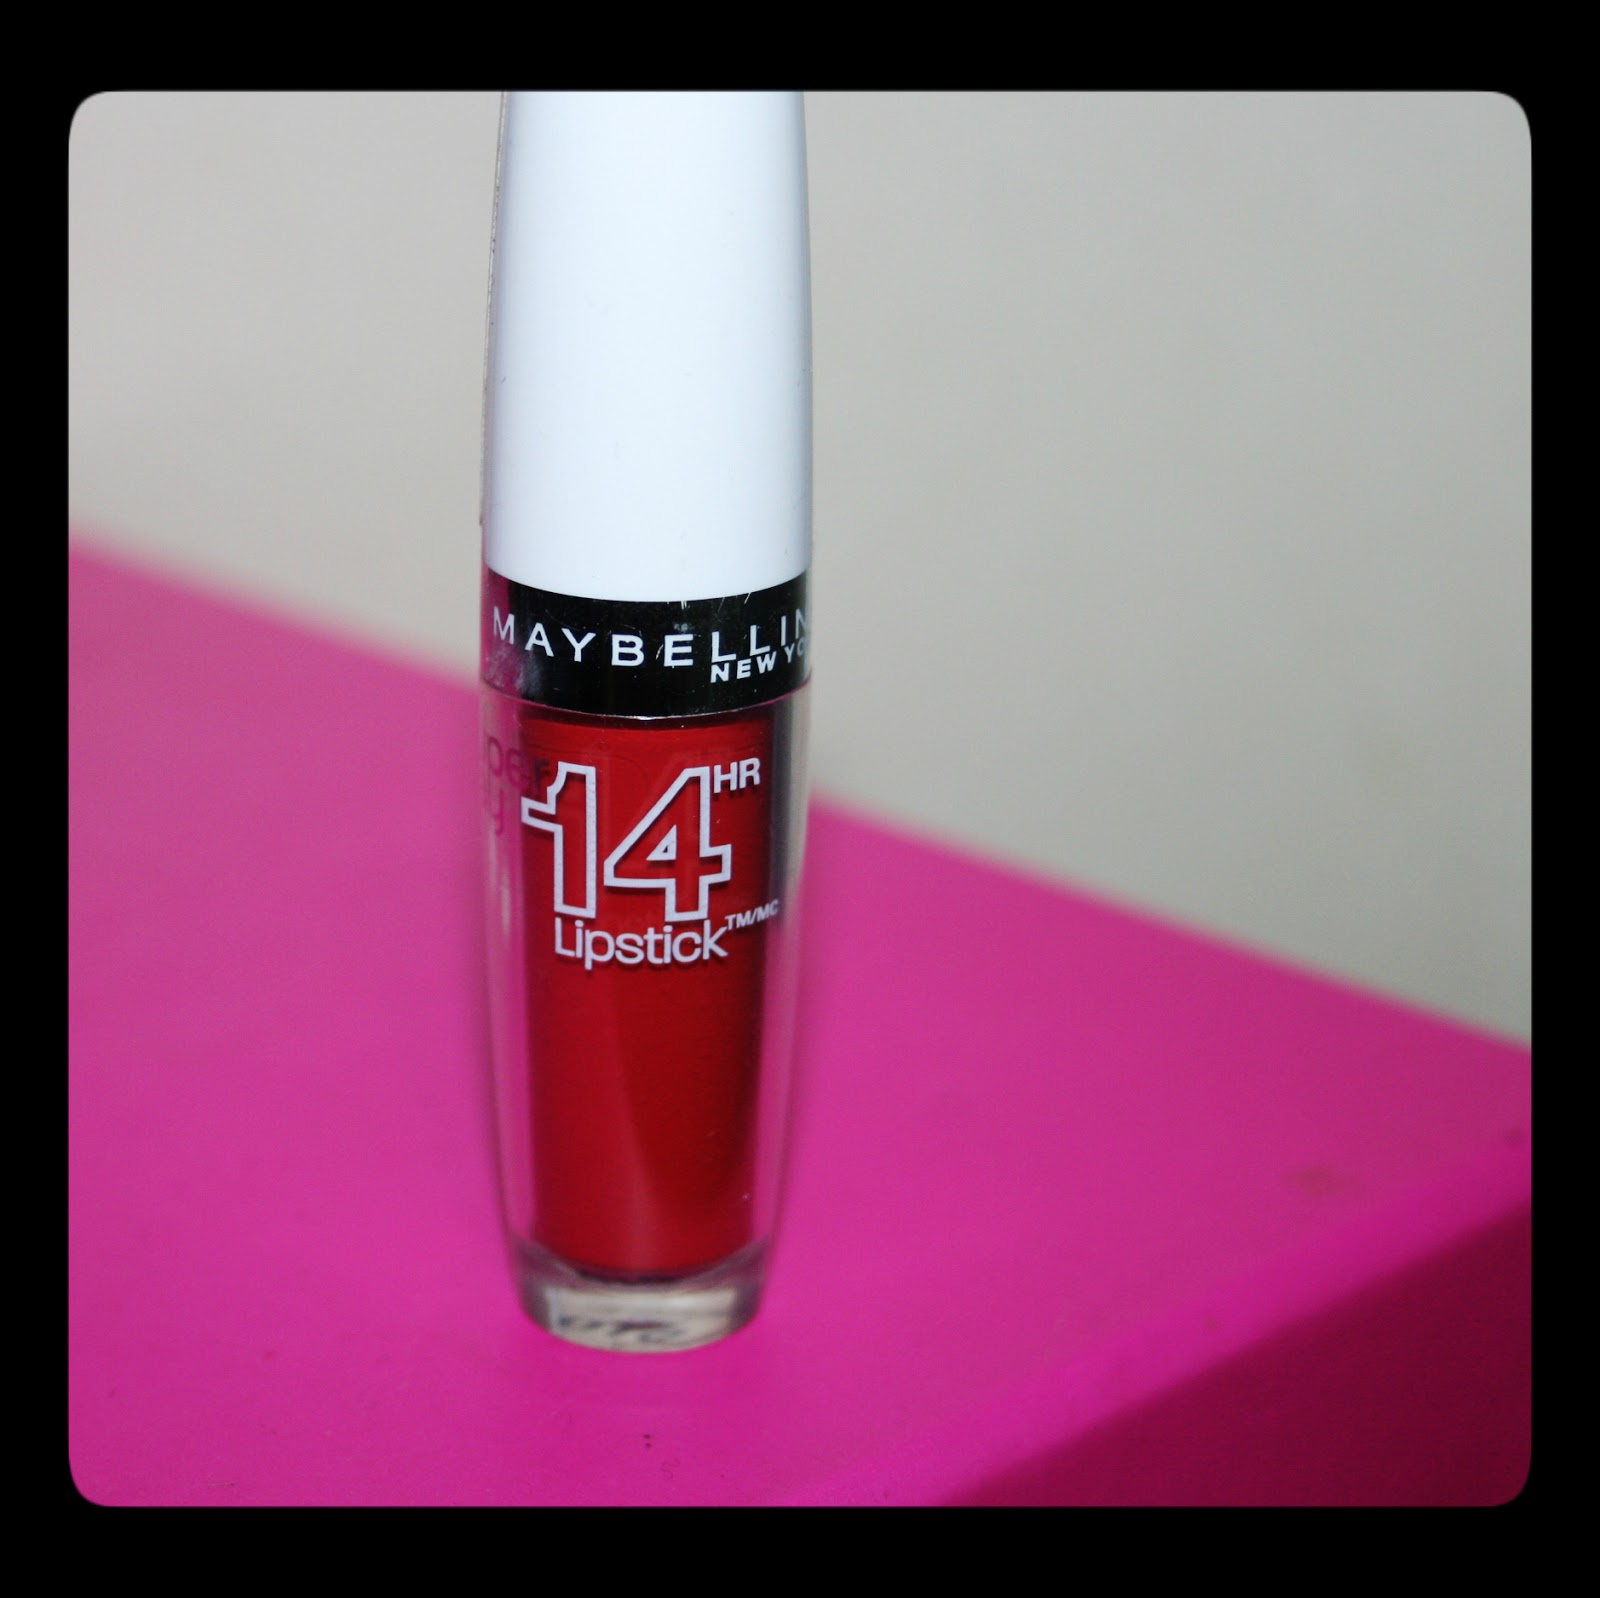 michelaismyname maybelline 14hr lipstick non stop red